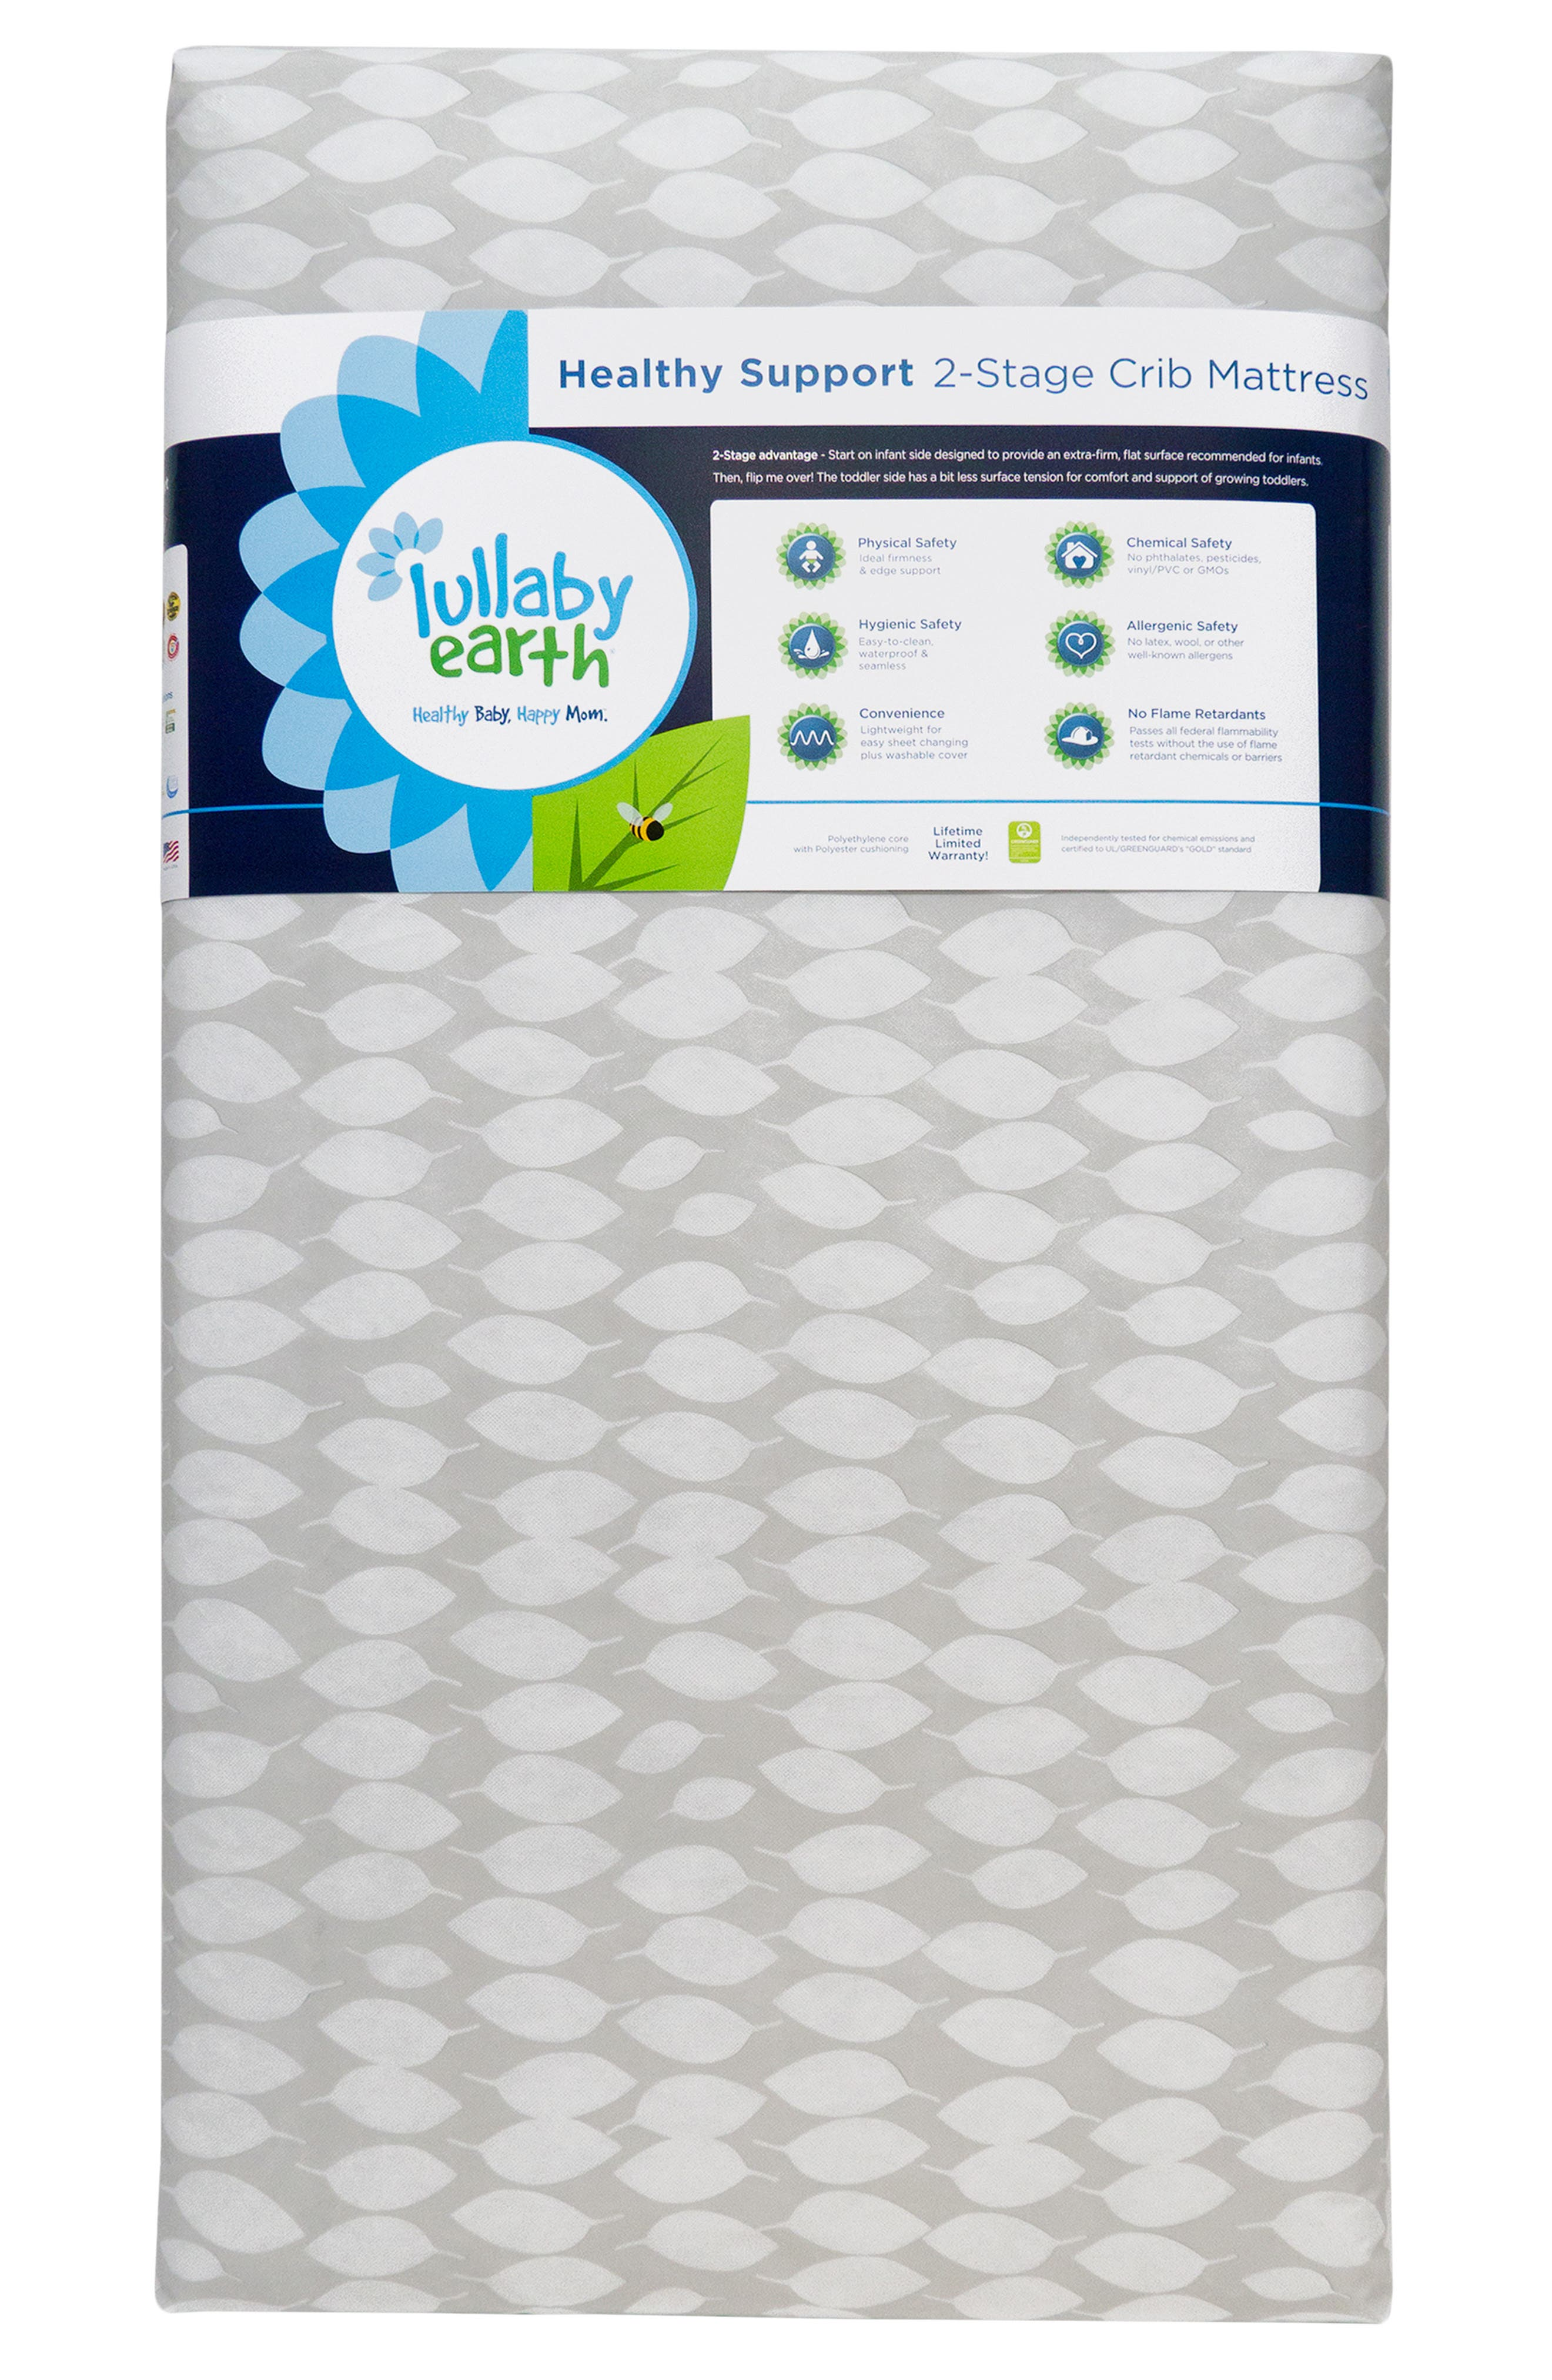 Healthy Support 2-Stage Crib Mattress,                             Alternate thumbnail 2, color,                             Grey/White